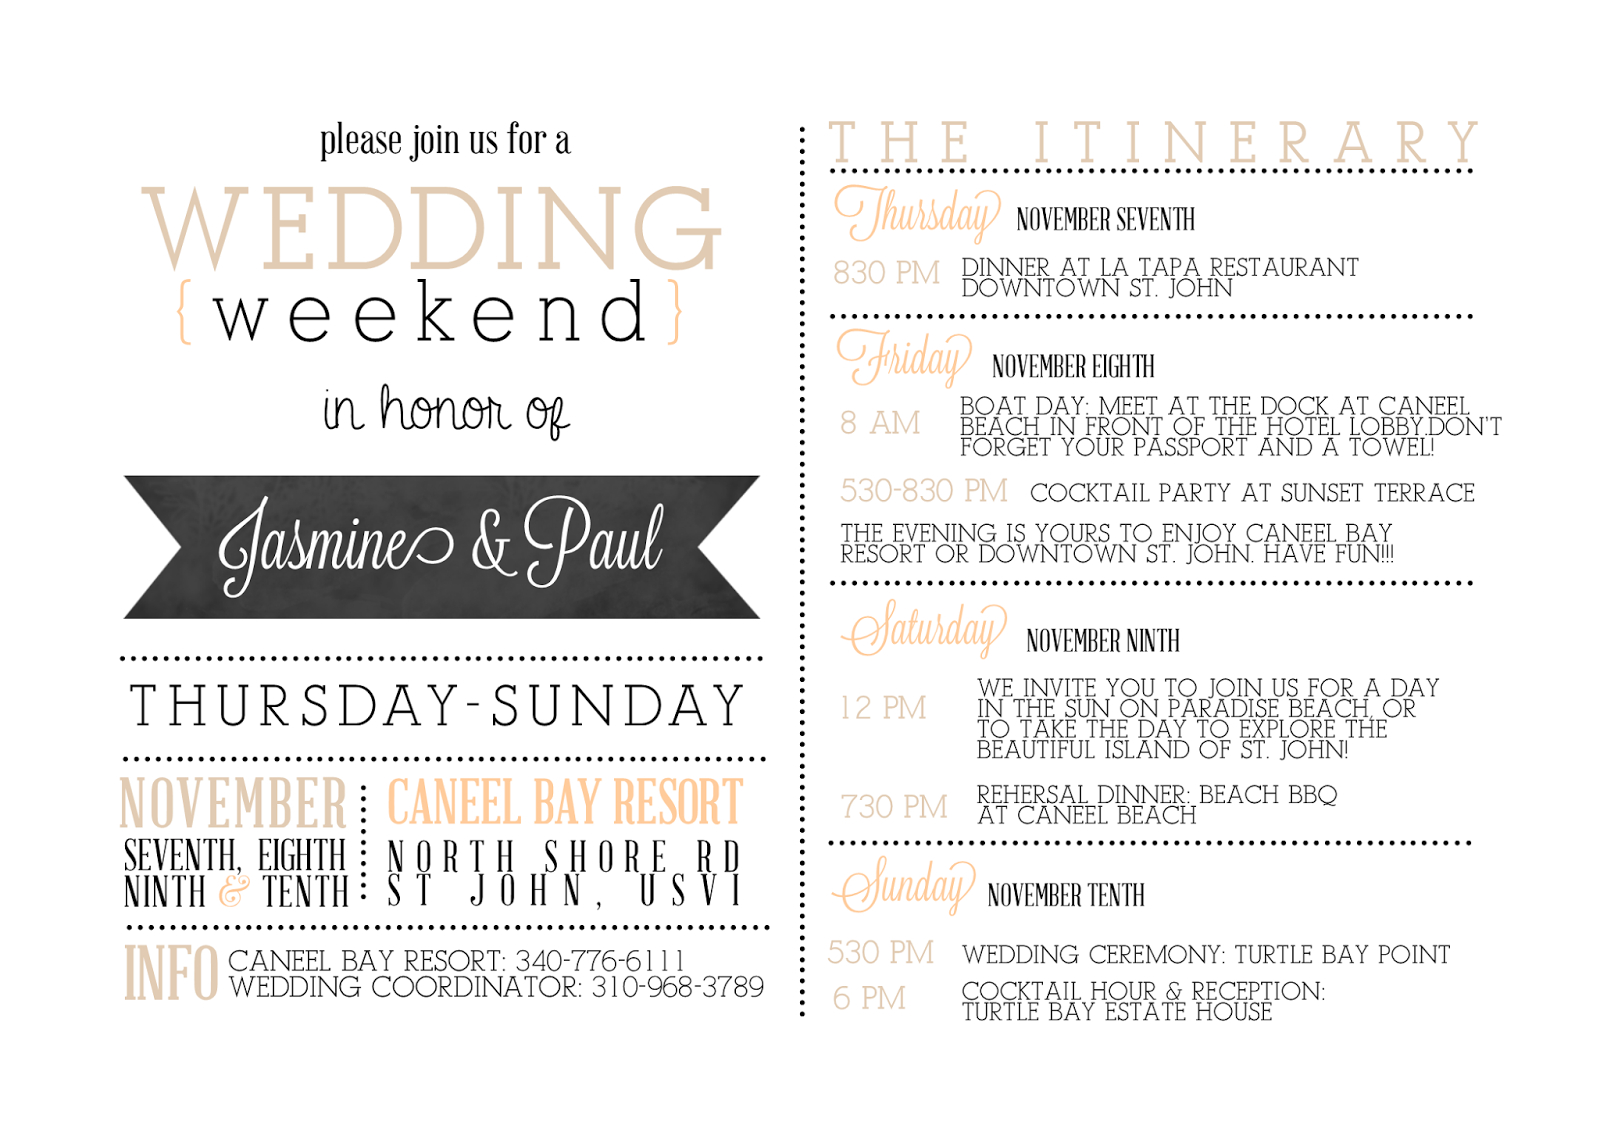 Wedding Welcome Bag Letter Template - Itinerary Template for Wedding Guests